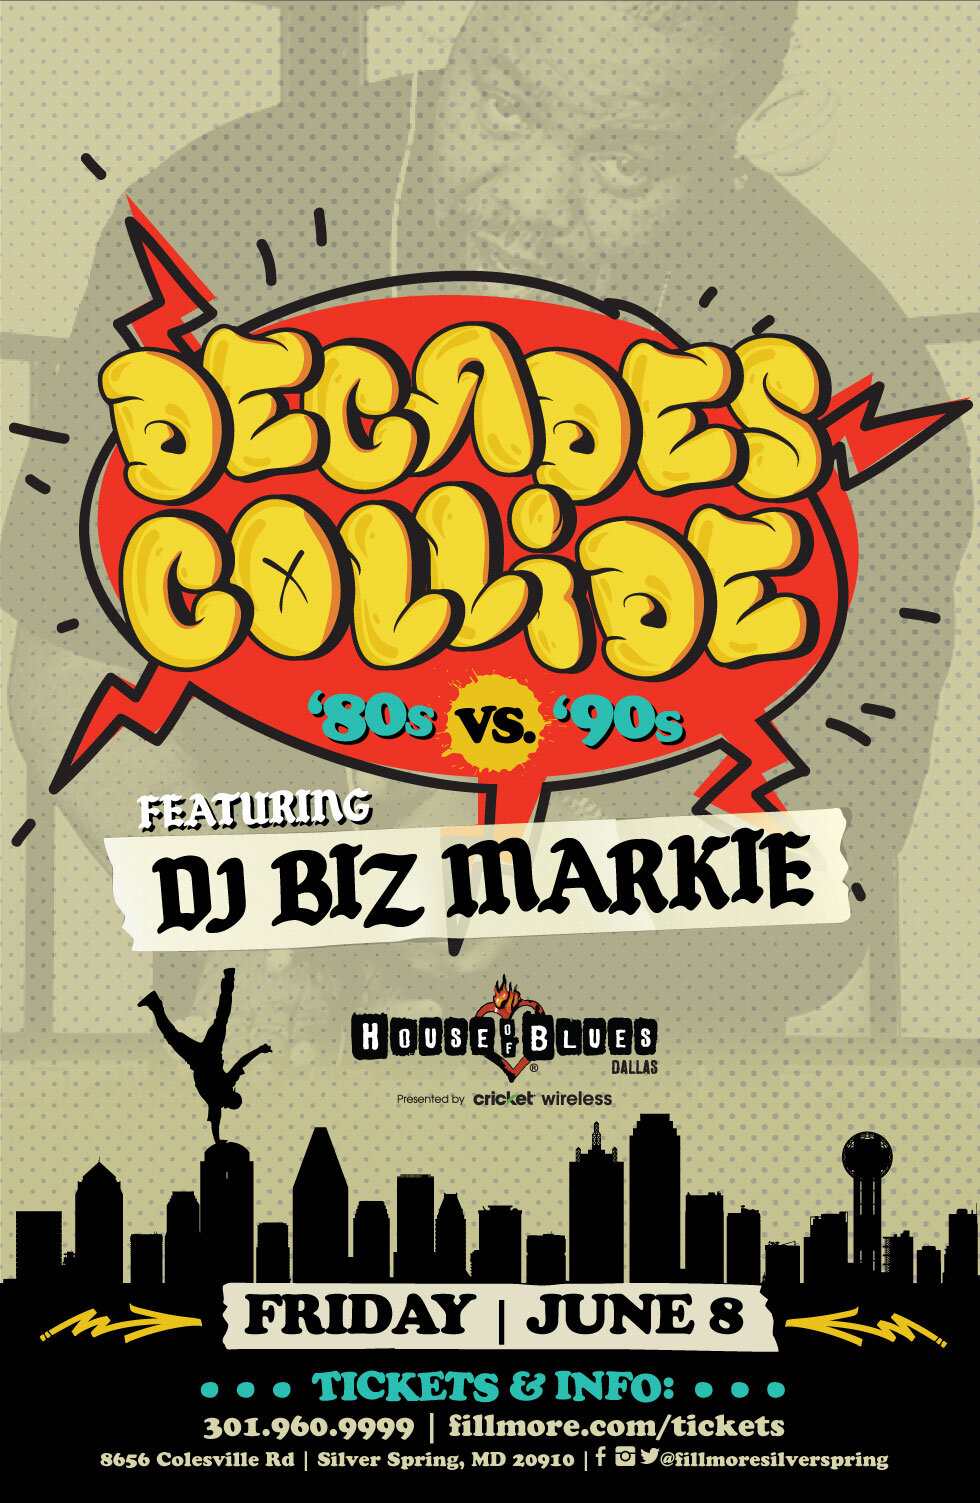 Live Nation Clubs & Theaters - Decades Collide - Biz Markie Tent Pole Event